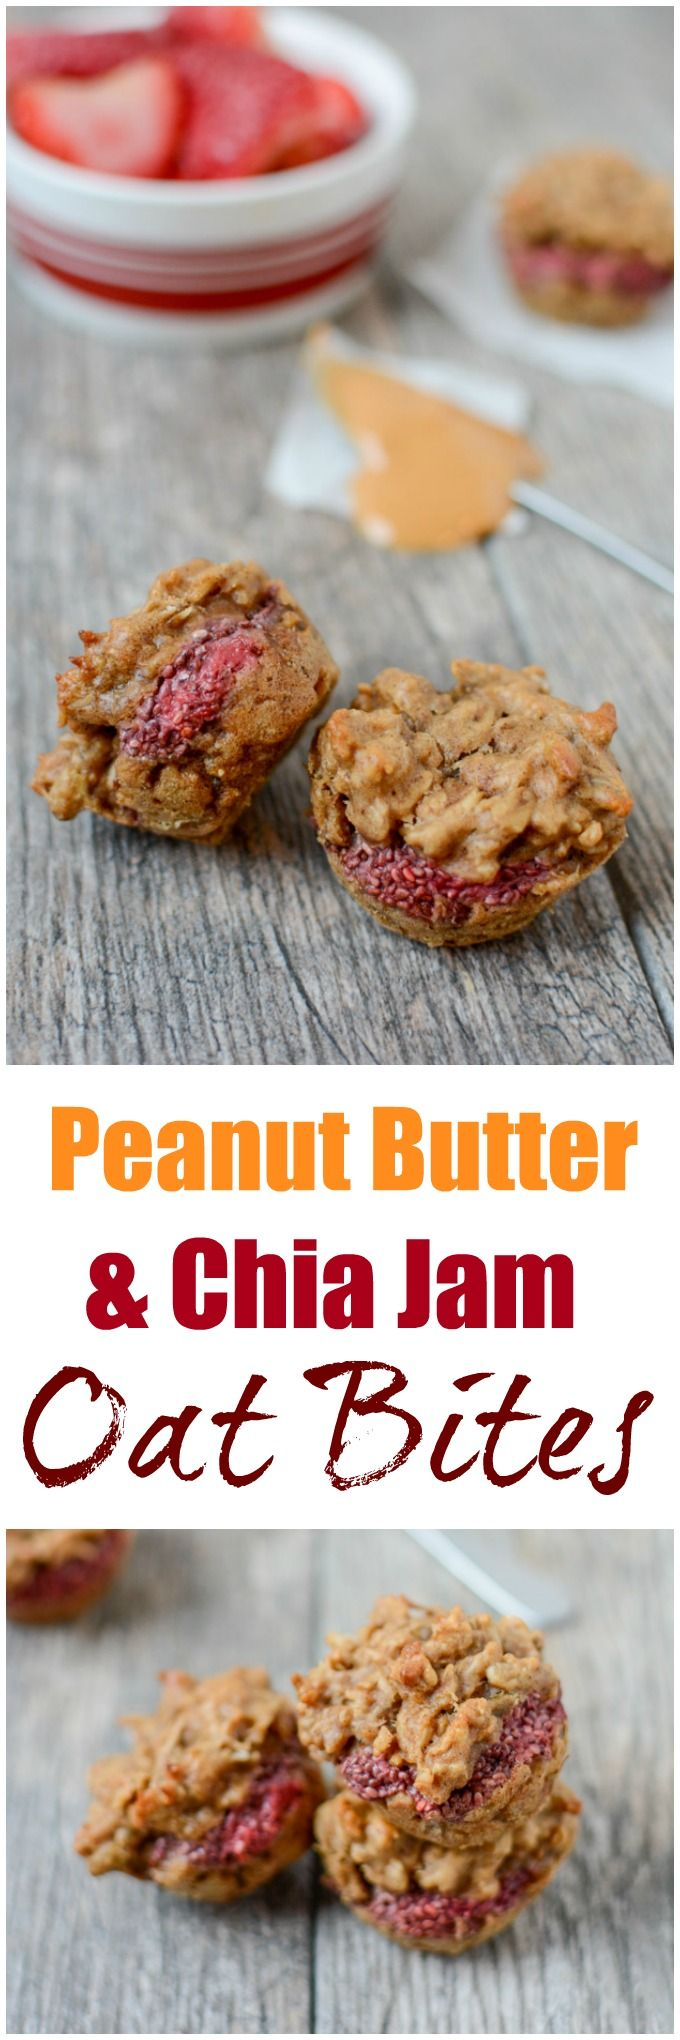 This gluten-free recipe for Peanut Butter and Chia Jam Oat Bites is a fun twist on your favorite childhood sandwich! Perfect for breakfast or a grab-and-go snack.  Hi Friends! Just popping in to share a simple, kid-friendly breakfast or snack idea! These Peanut Butter and Chia Jam Oat Bites are bite-sized, easy to make ahead of...Read More »